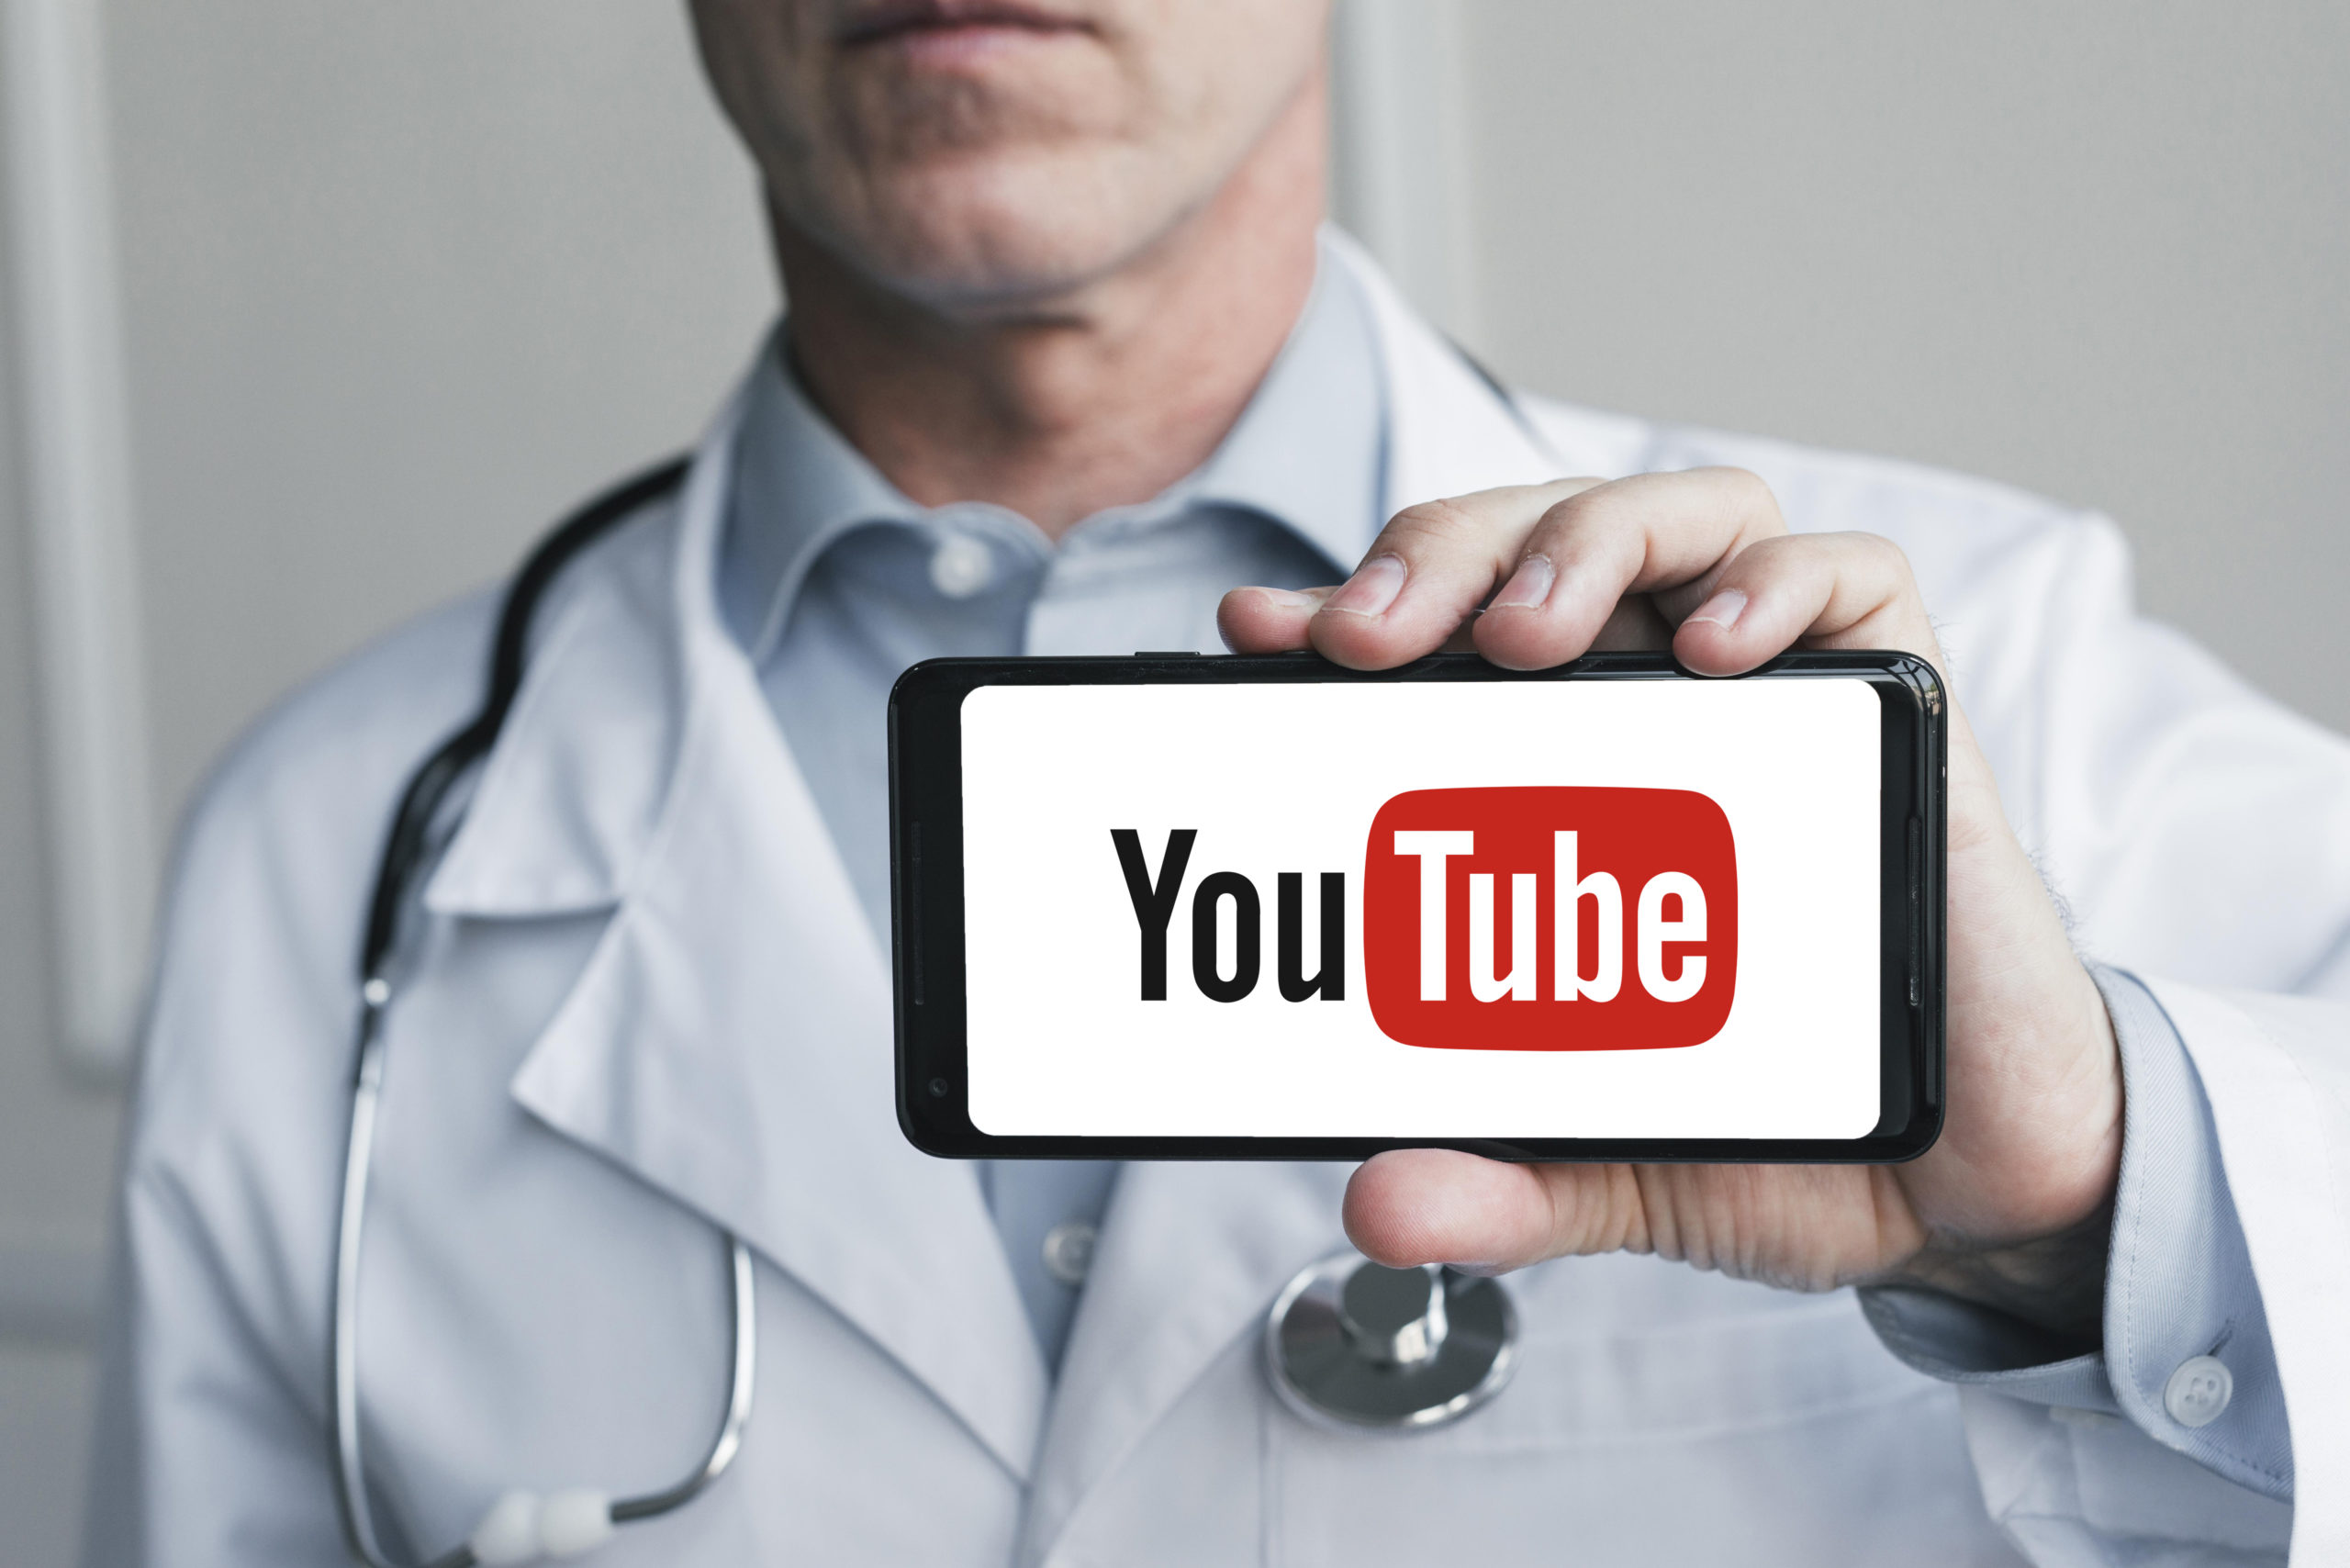 How YouTube Will Help Attract More Patients to Your Medical Practice